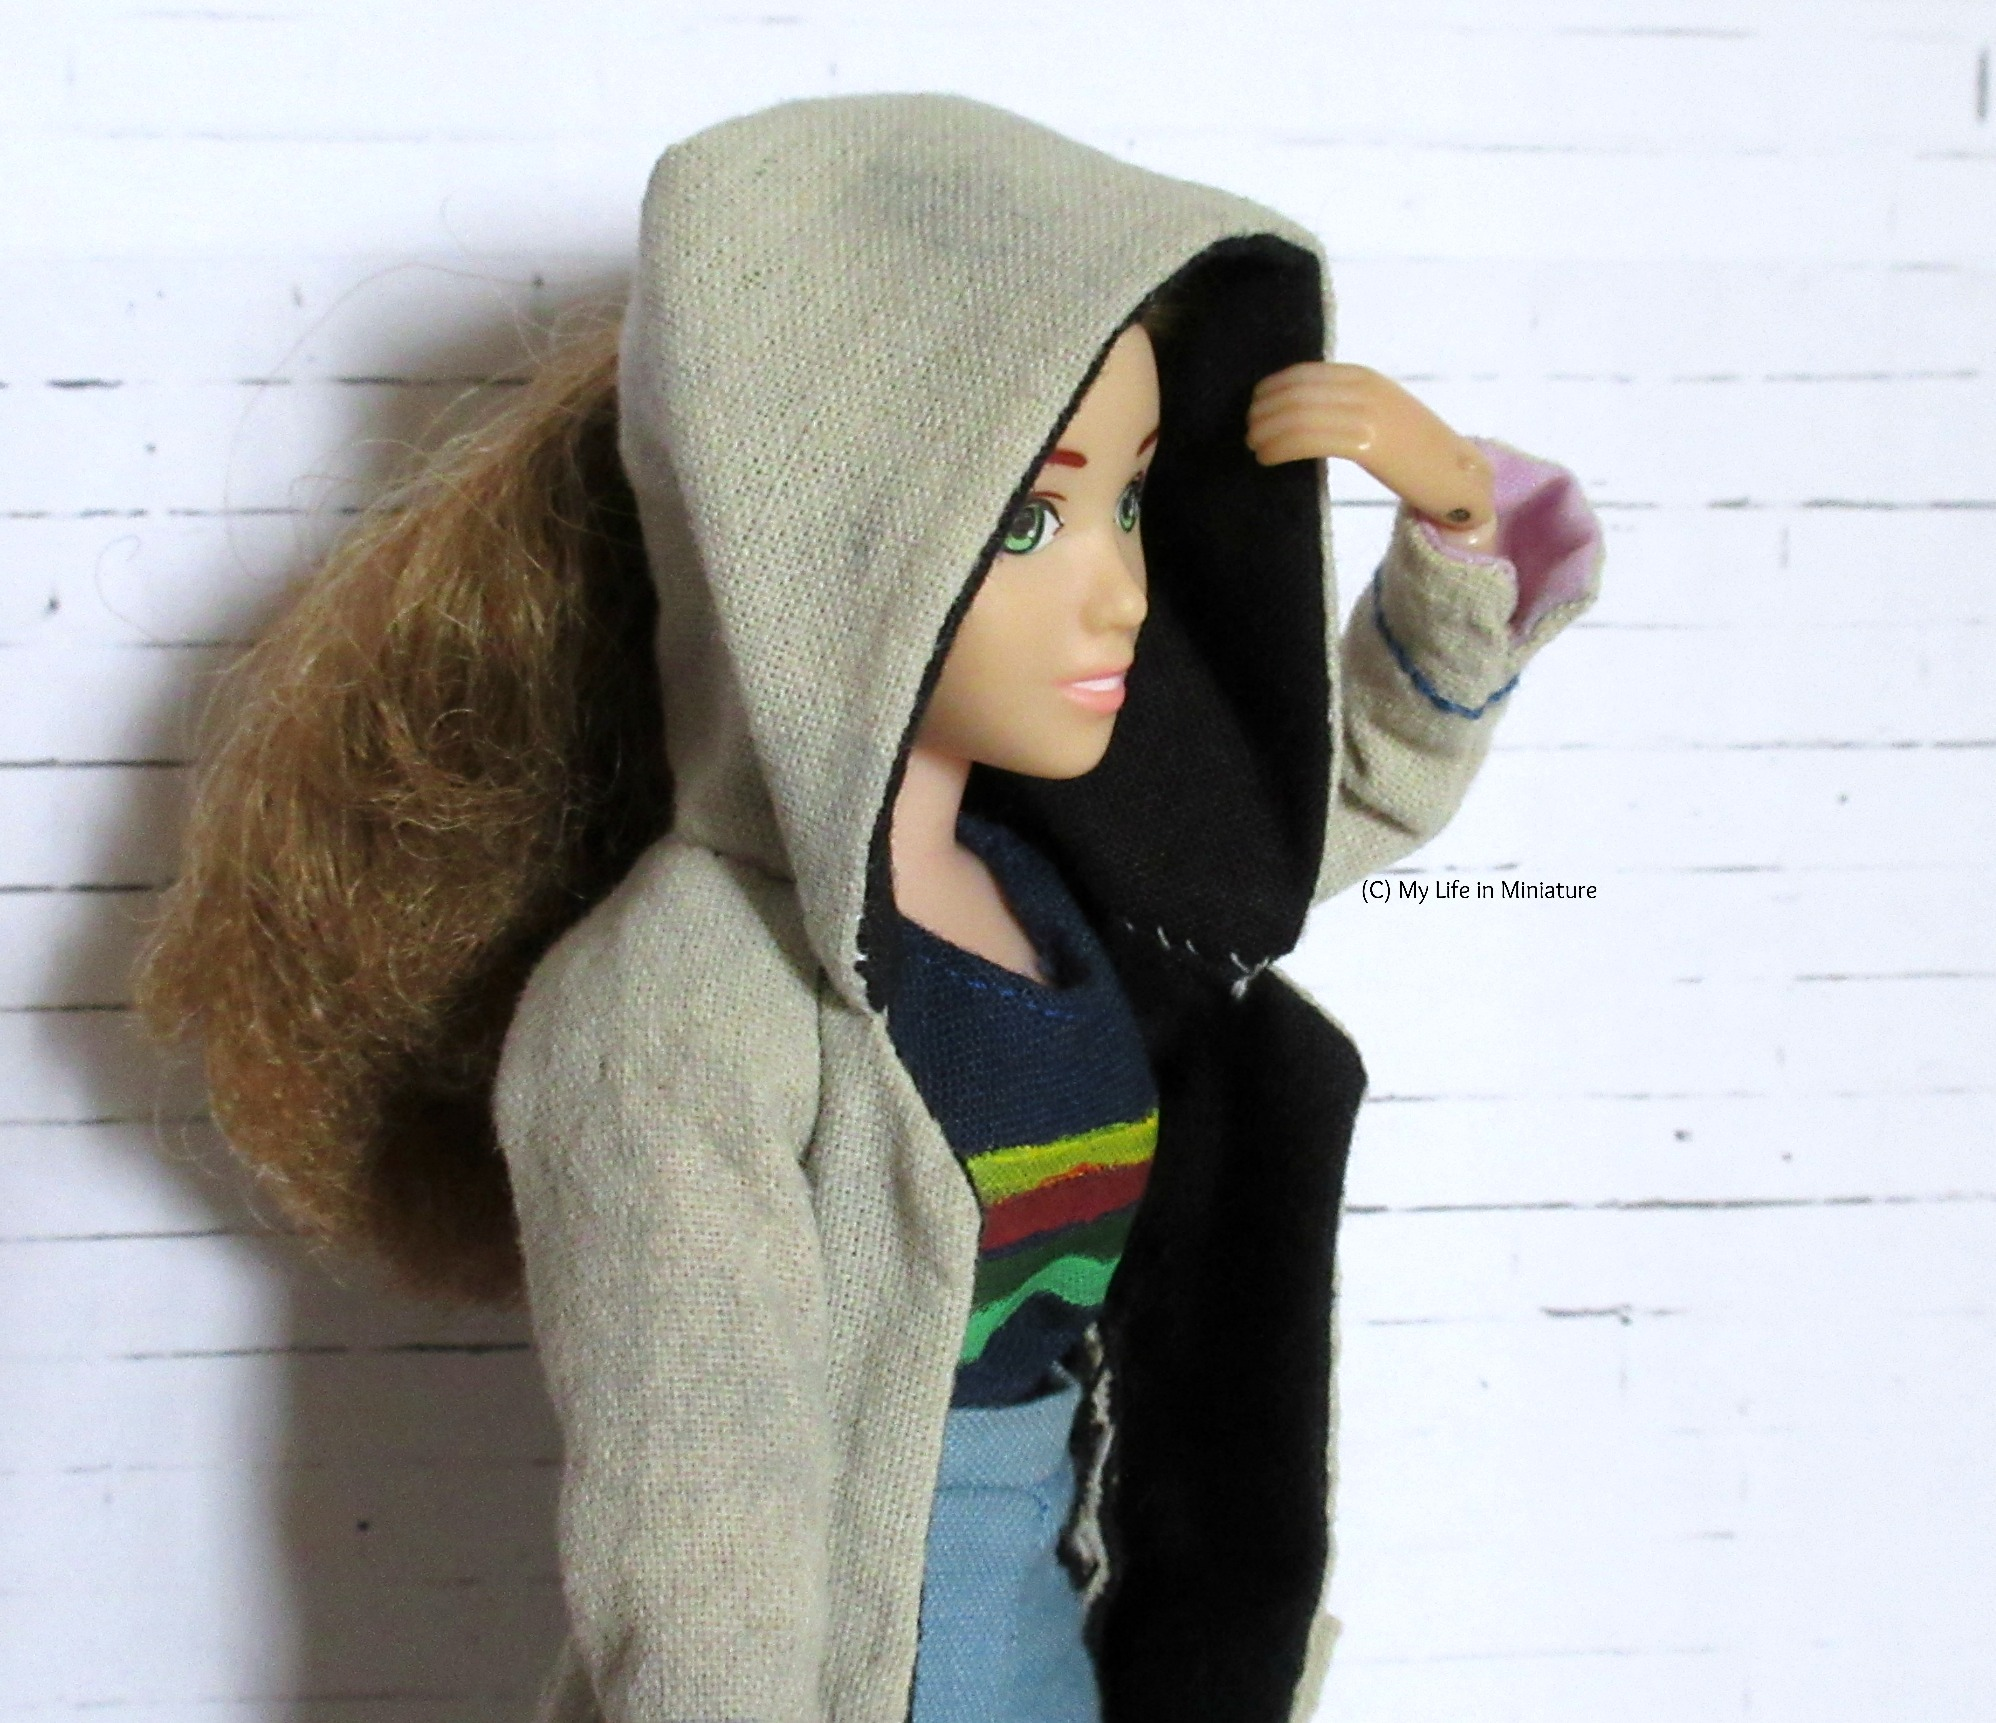 Sarah looks to the right of the image, and is against a white brick background. She wears Thirteenth Doctor cosplay, and has the hood of the coat up over her head. One hand is pulling it over, and her ponytail is visible behind the hood.